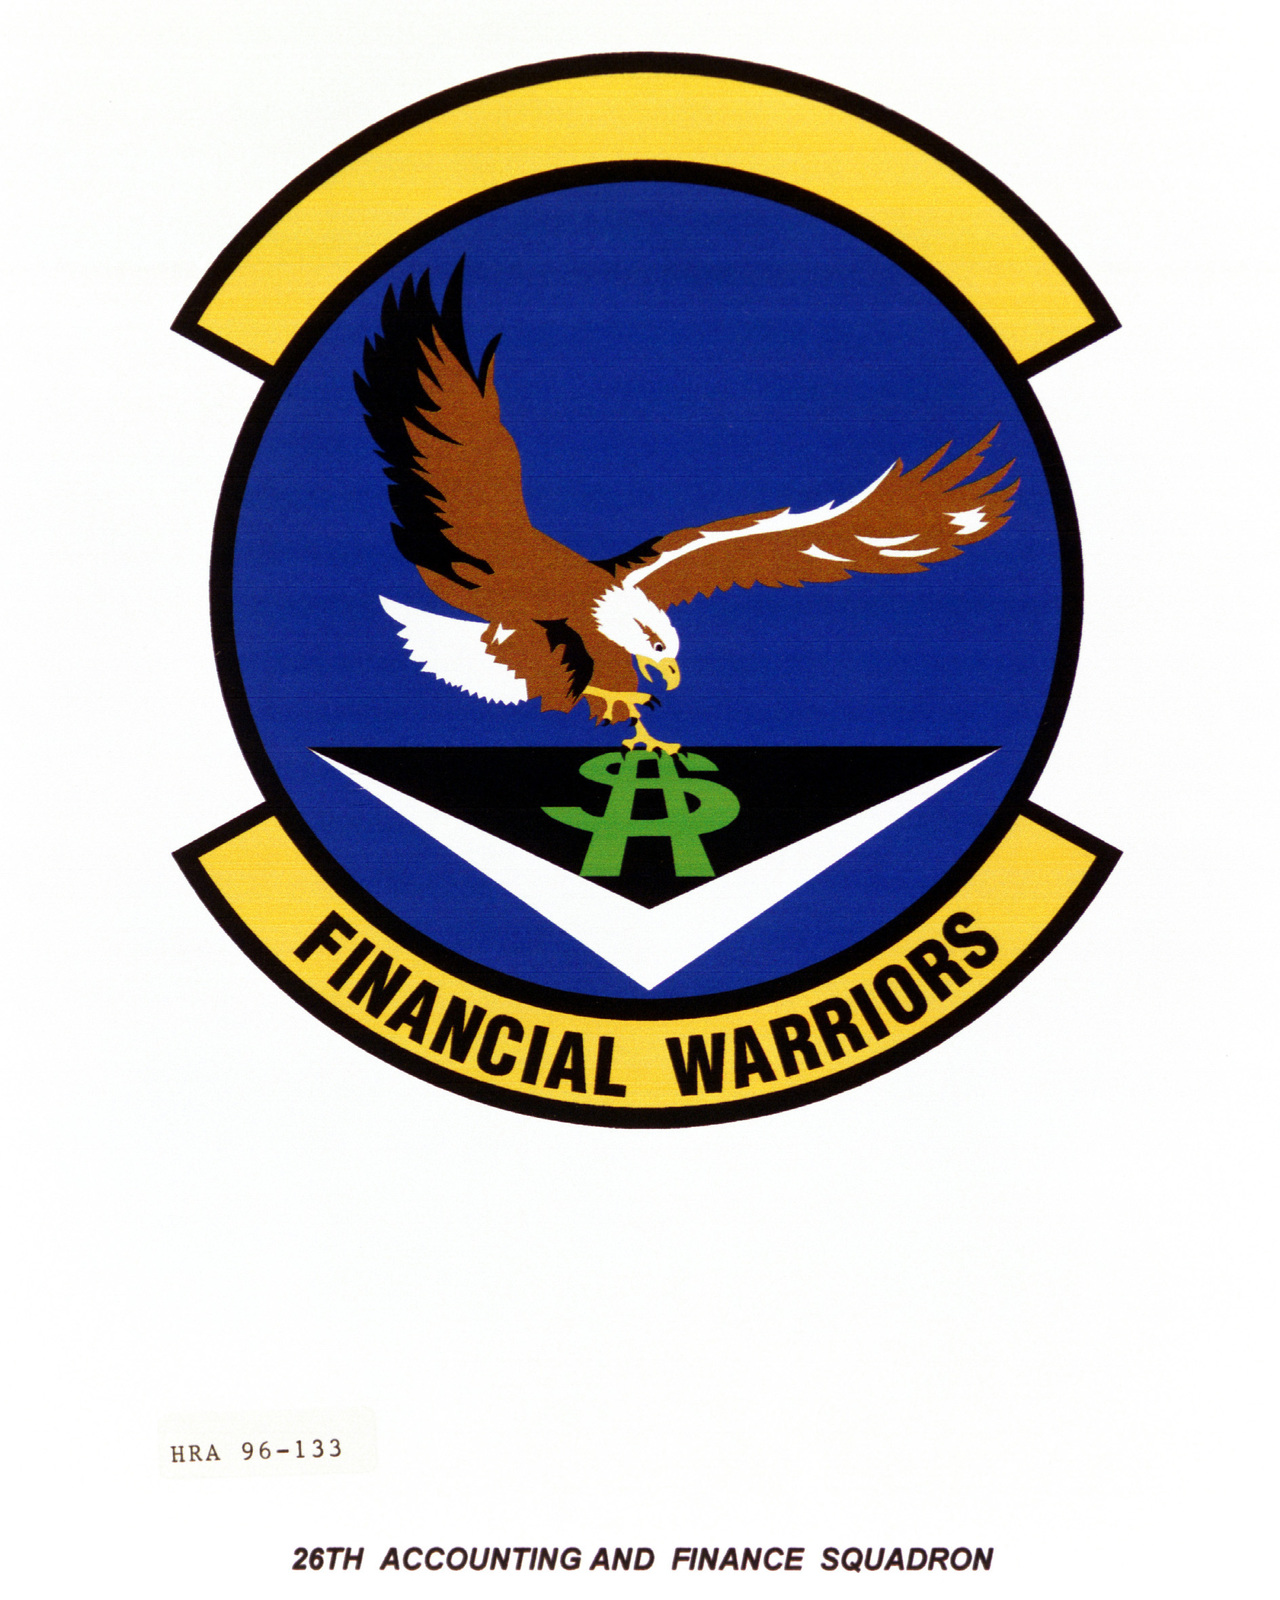 Air Force Organizational Emblem. 26th Accounting and Finance Squadron Exact Date Shot Unknown